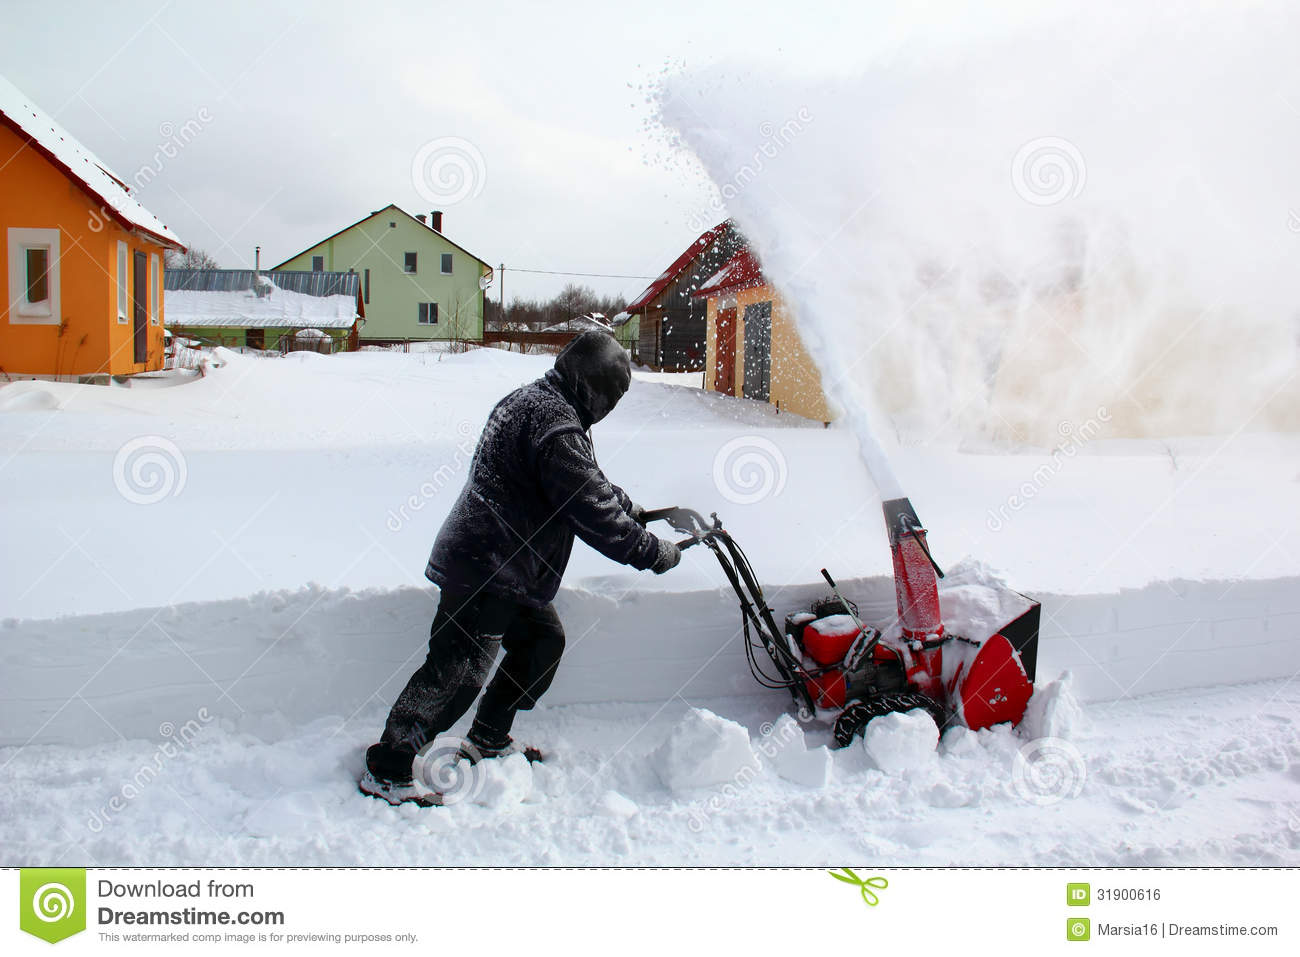 Snow Removal Clipart Snow removal